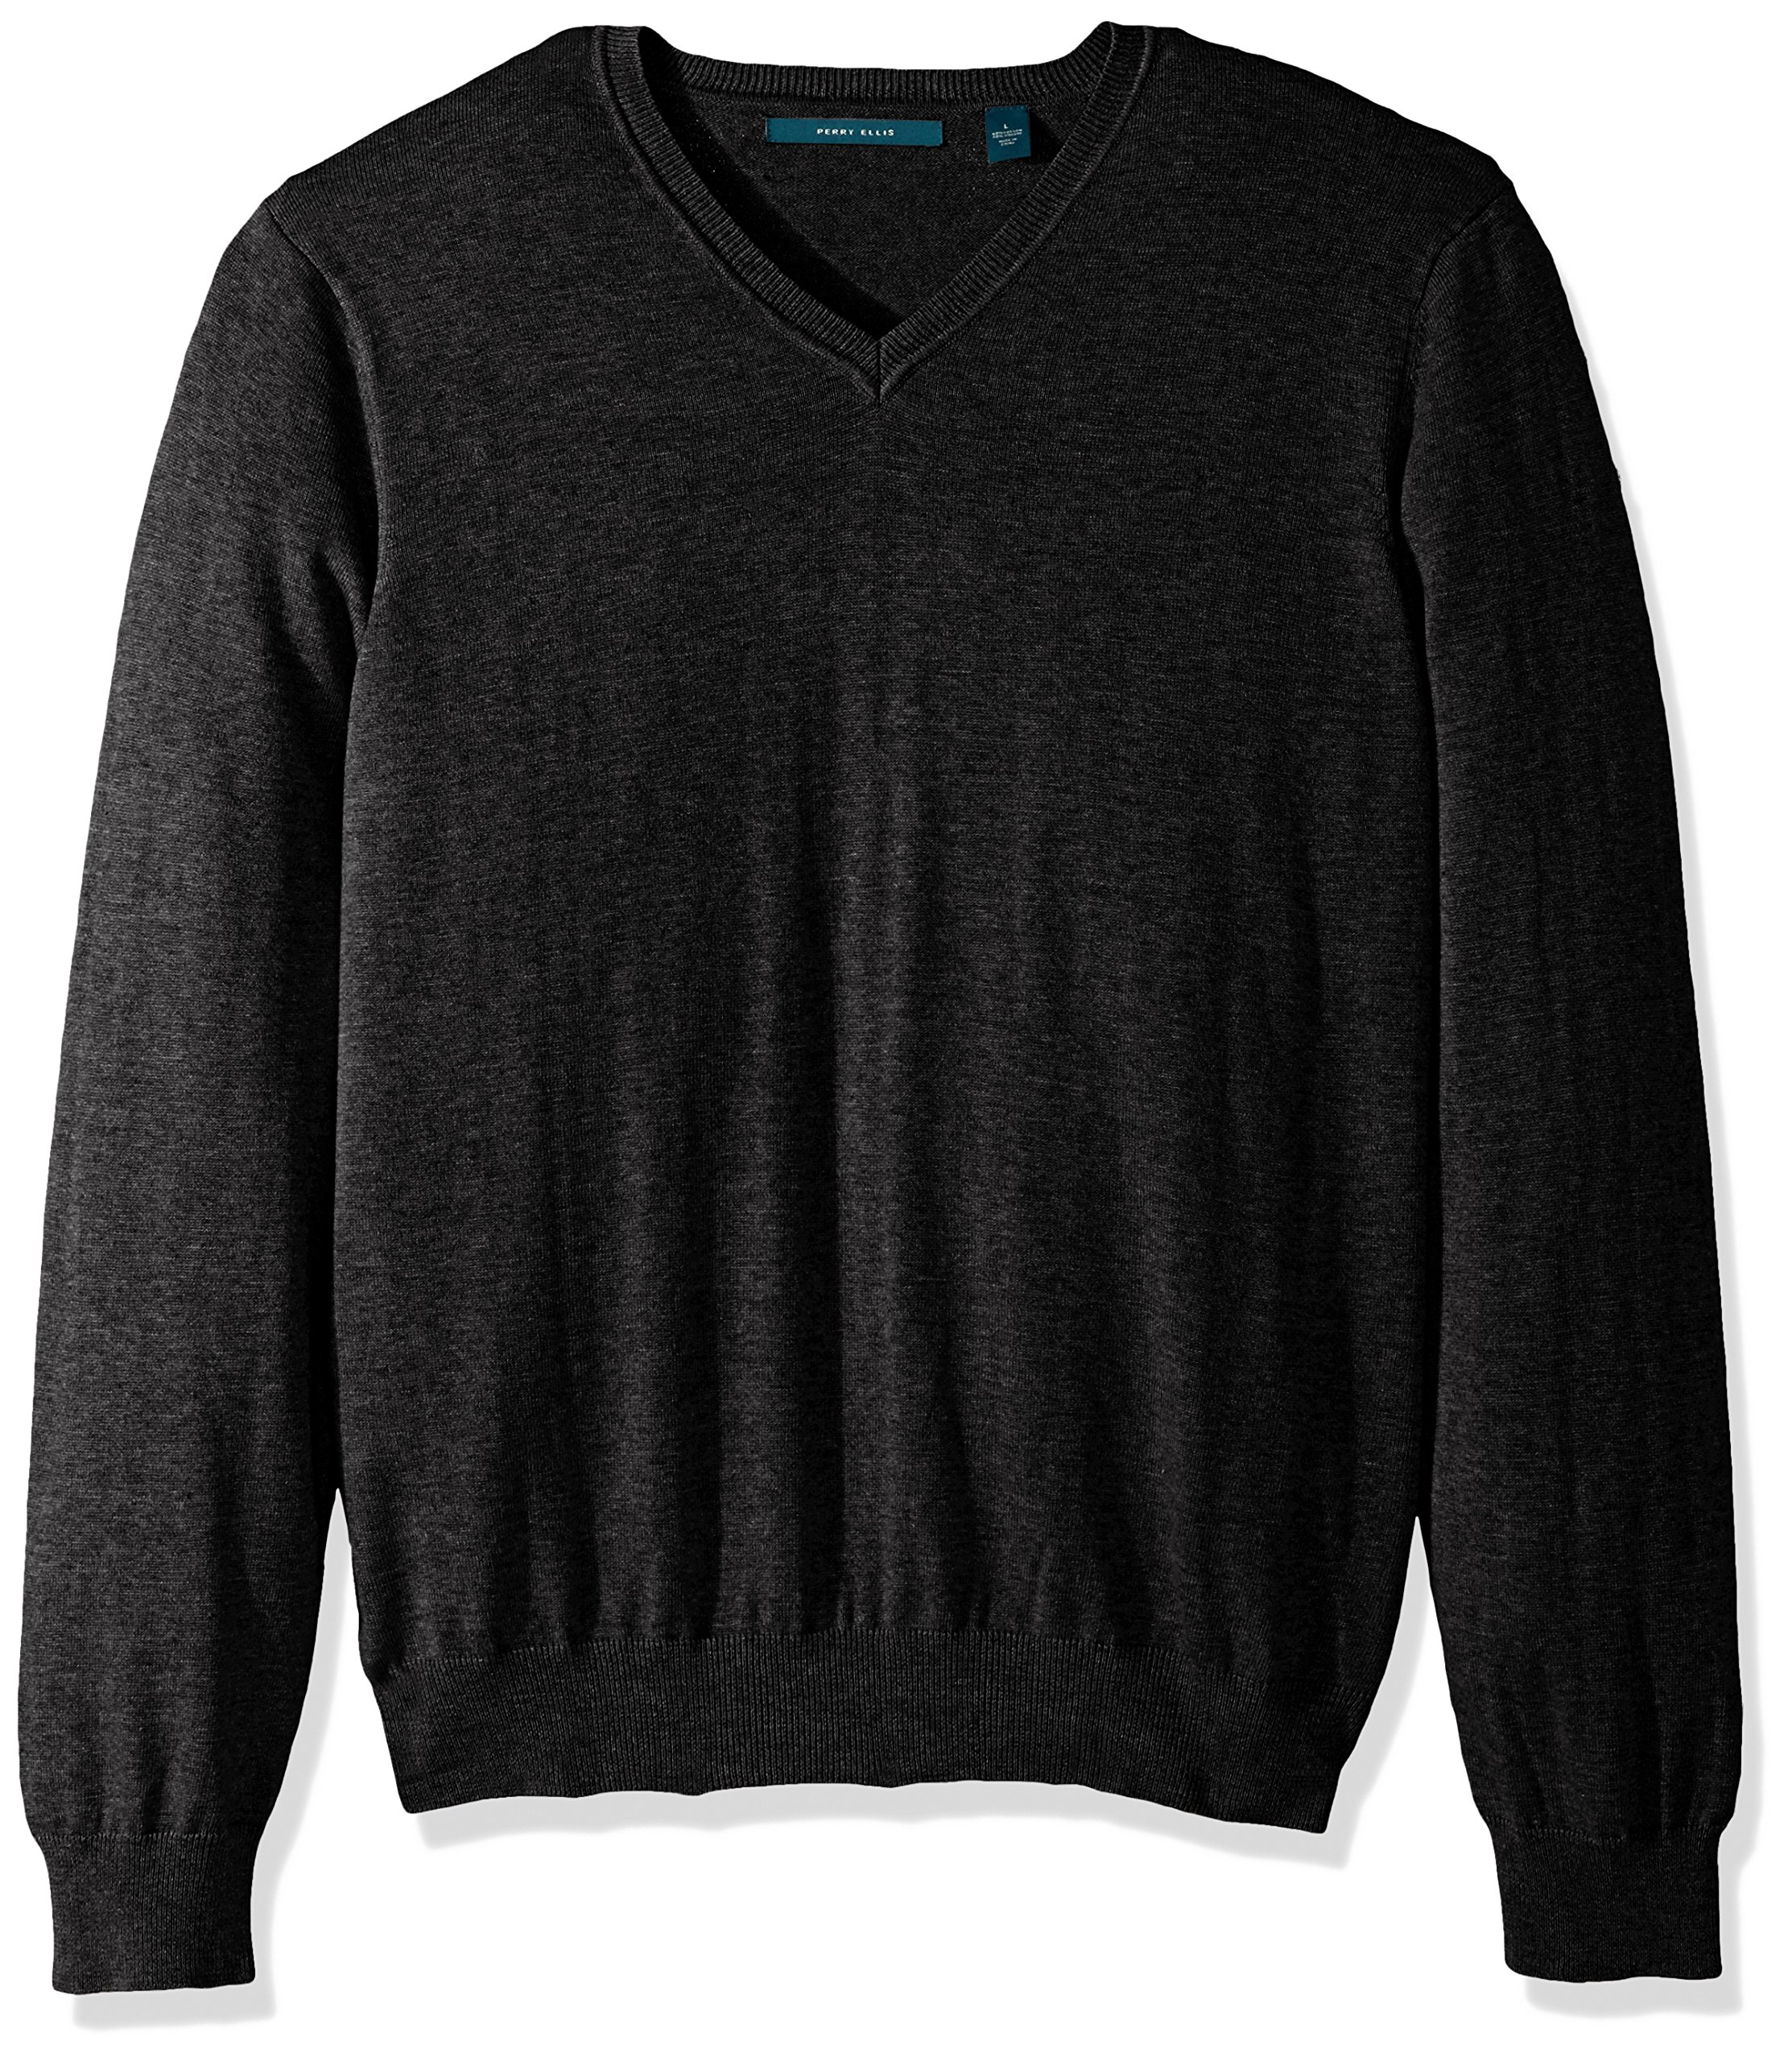 Perry Ellis Men's Classic Solid V-Neck Sweater, Charcoal Heather-4BFG7247, Extra Large